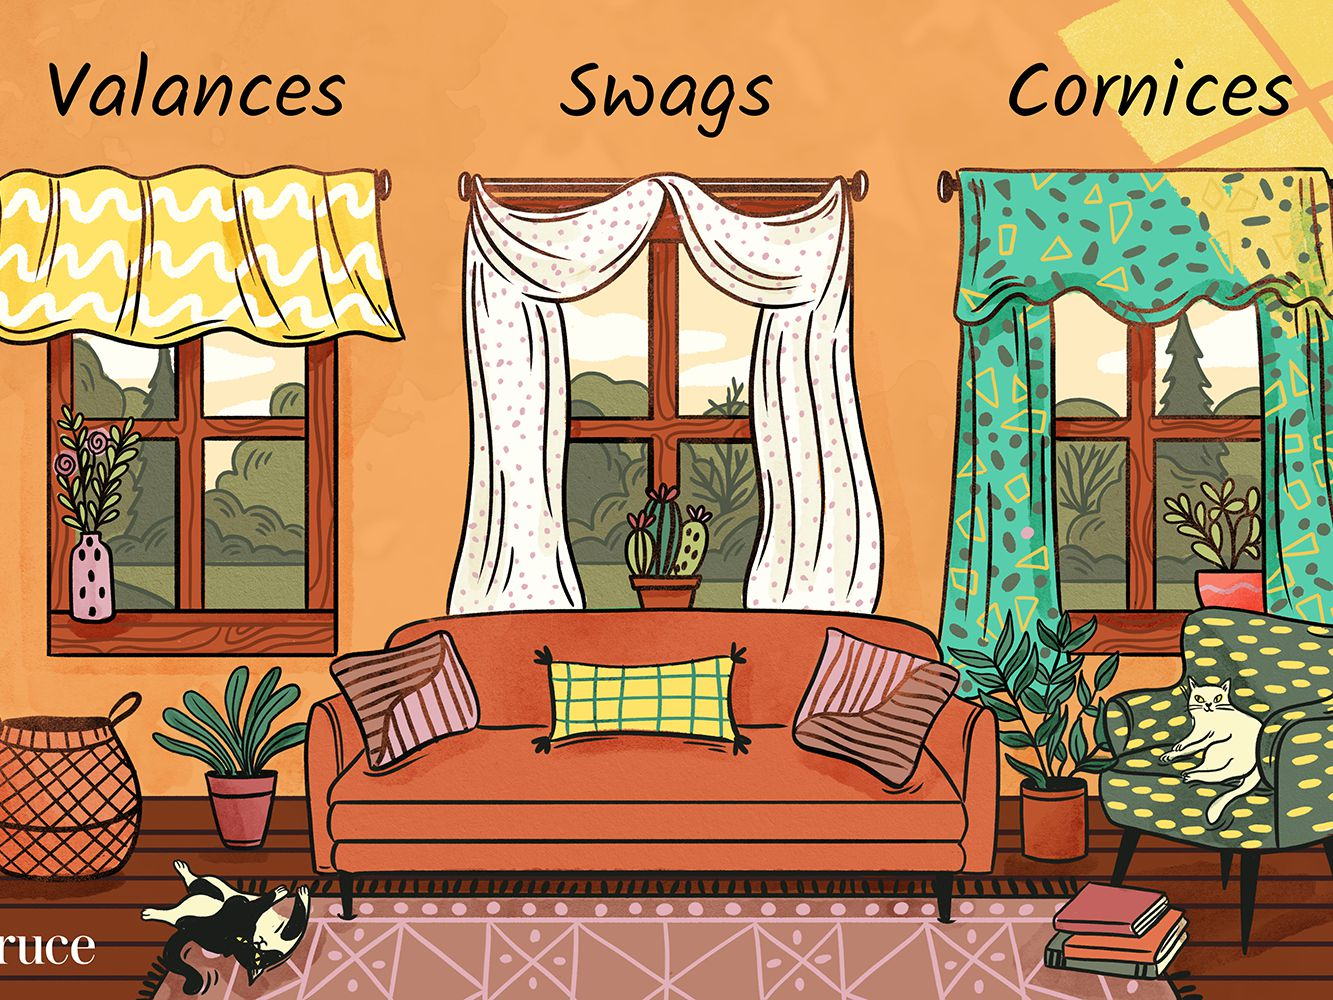 differences between valances swags